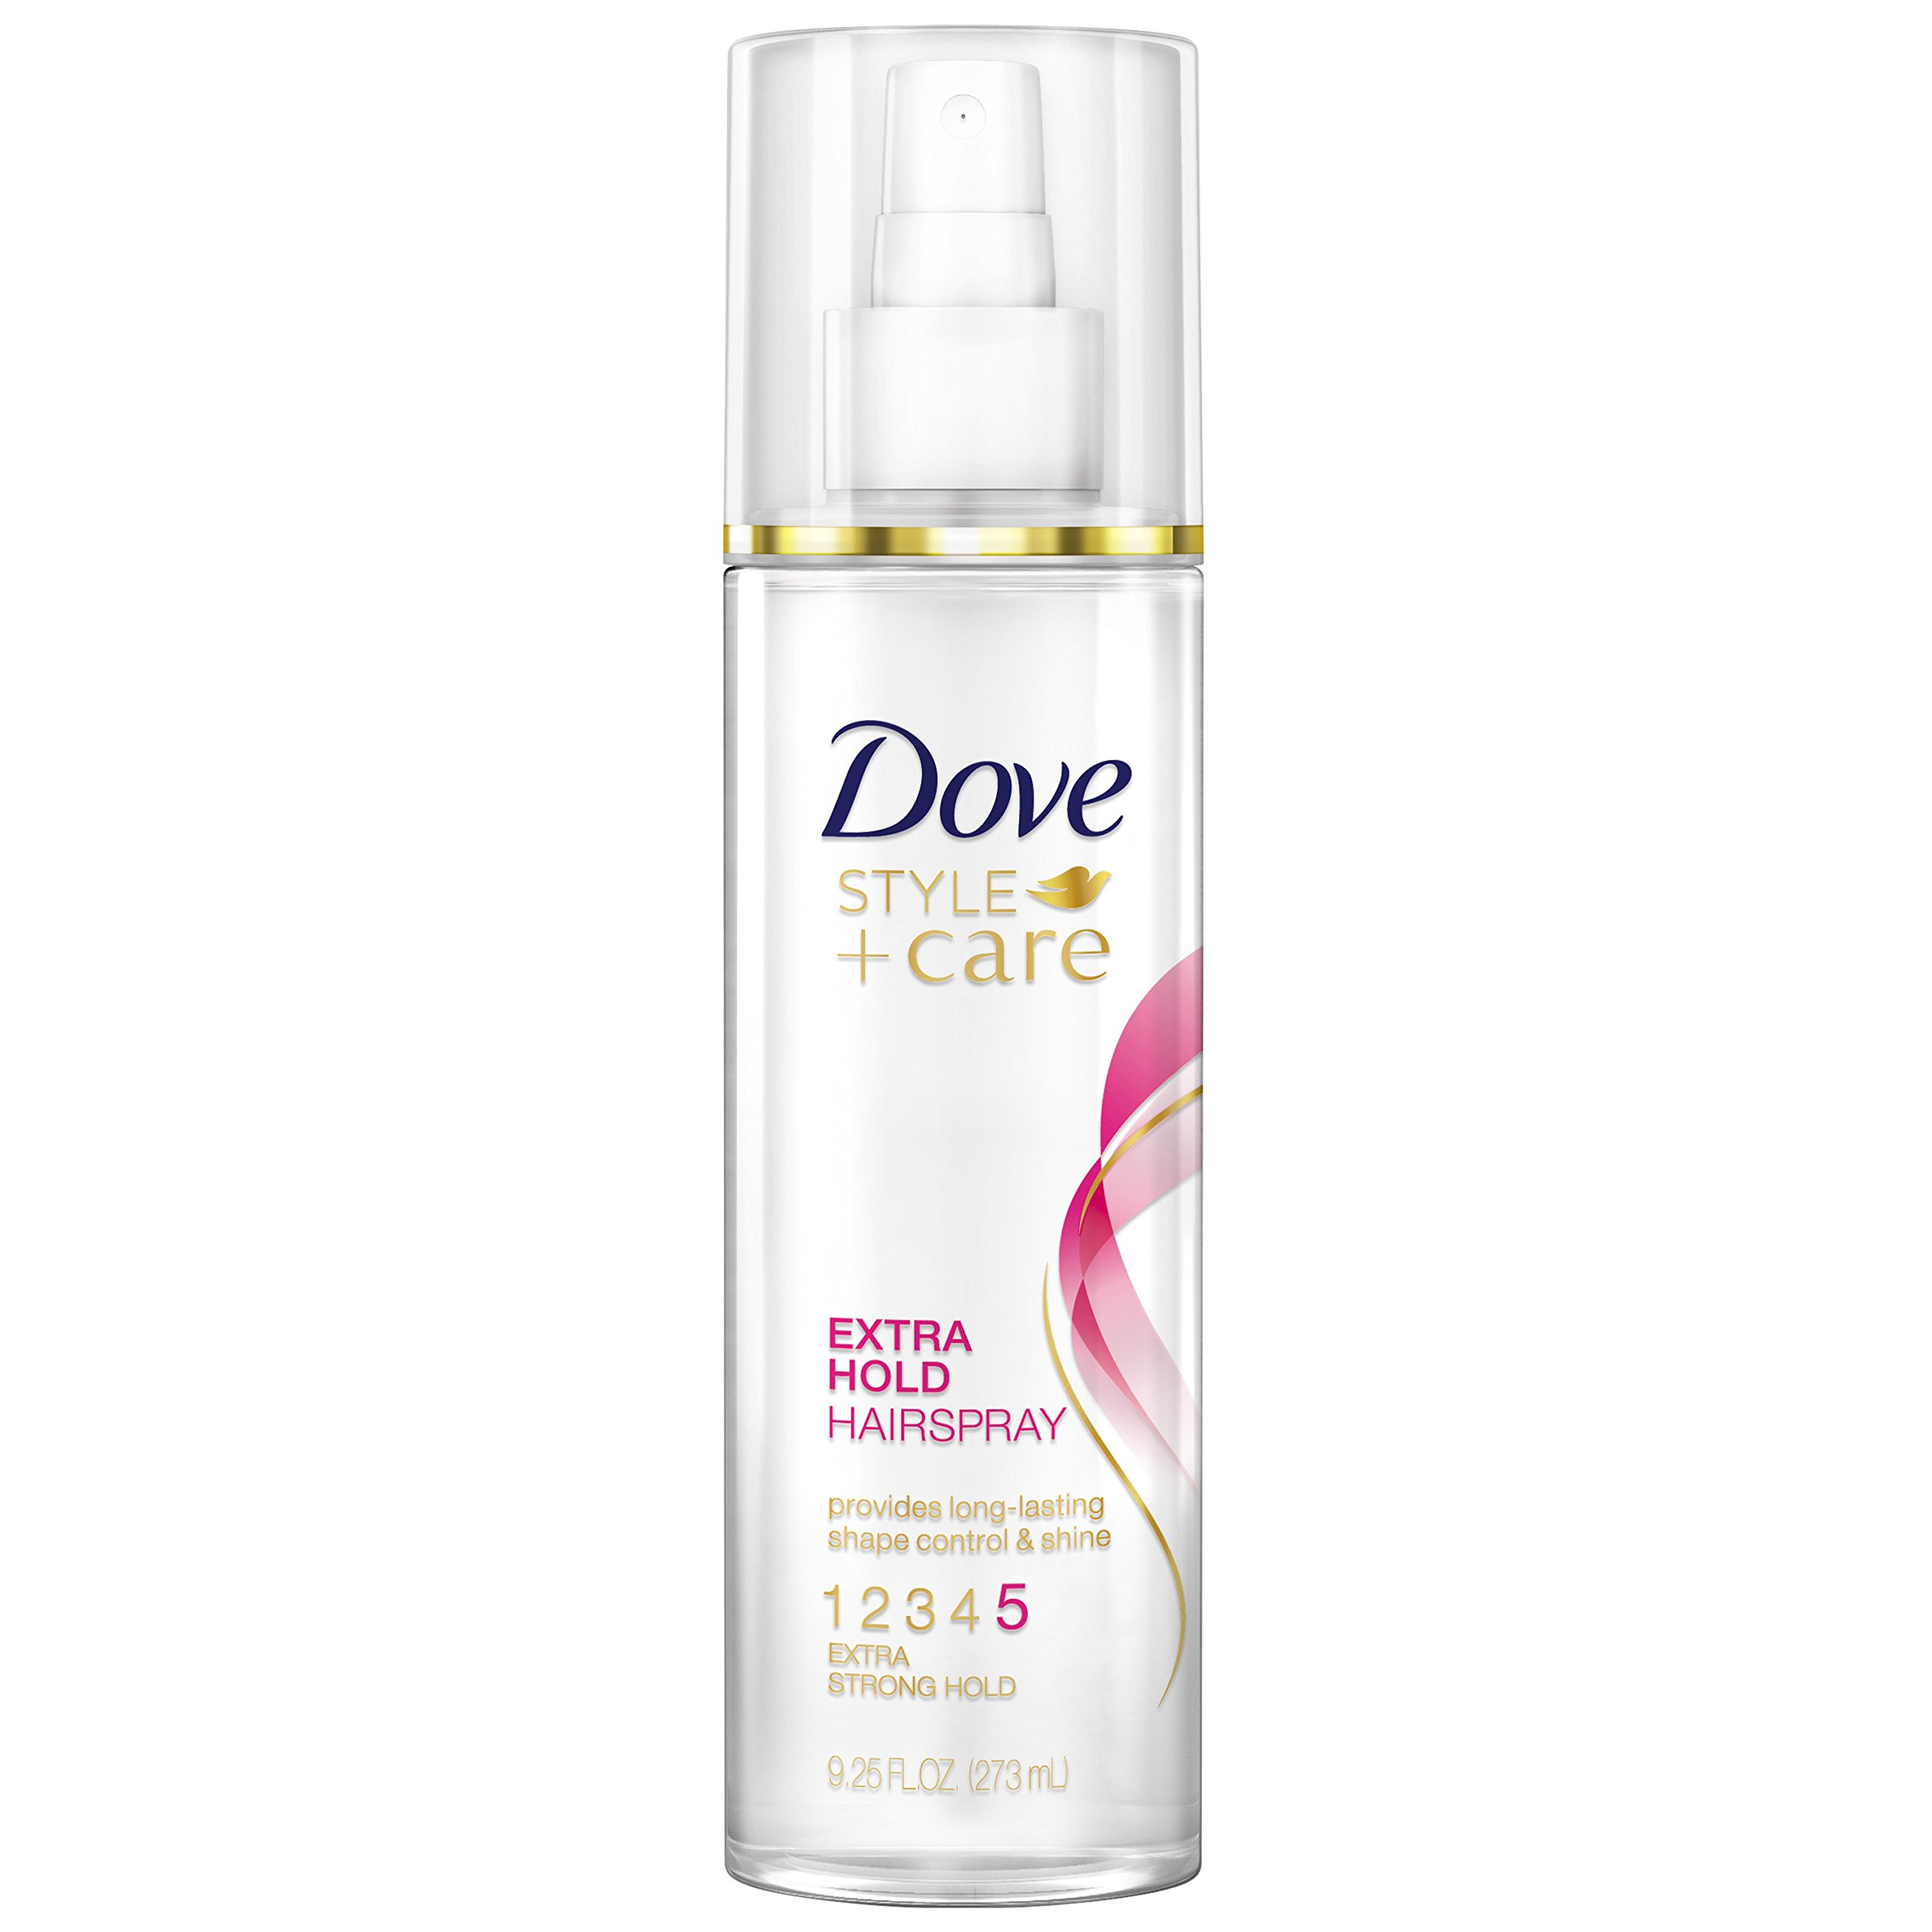 Dove Hairspray, Non-Aerosol Extra Hold 9.25 oz (Pack of 3)